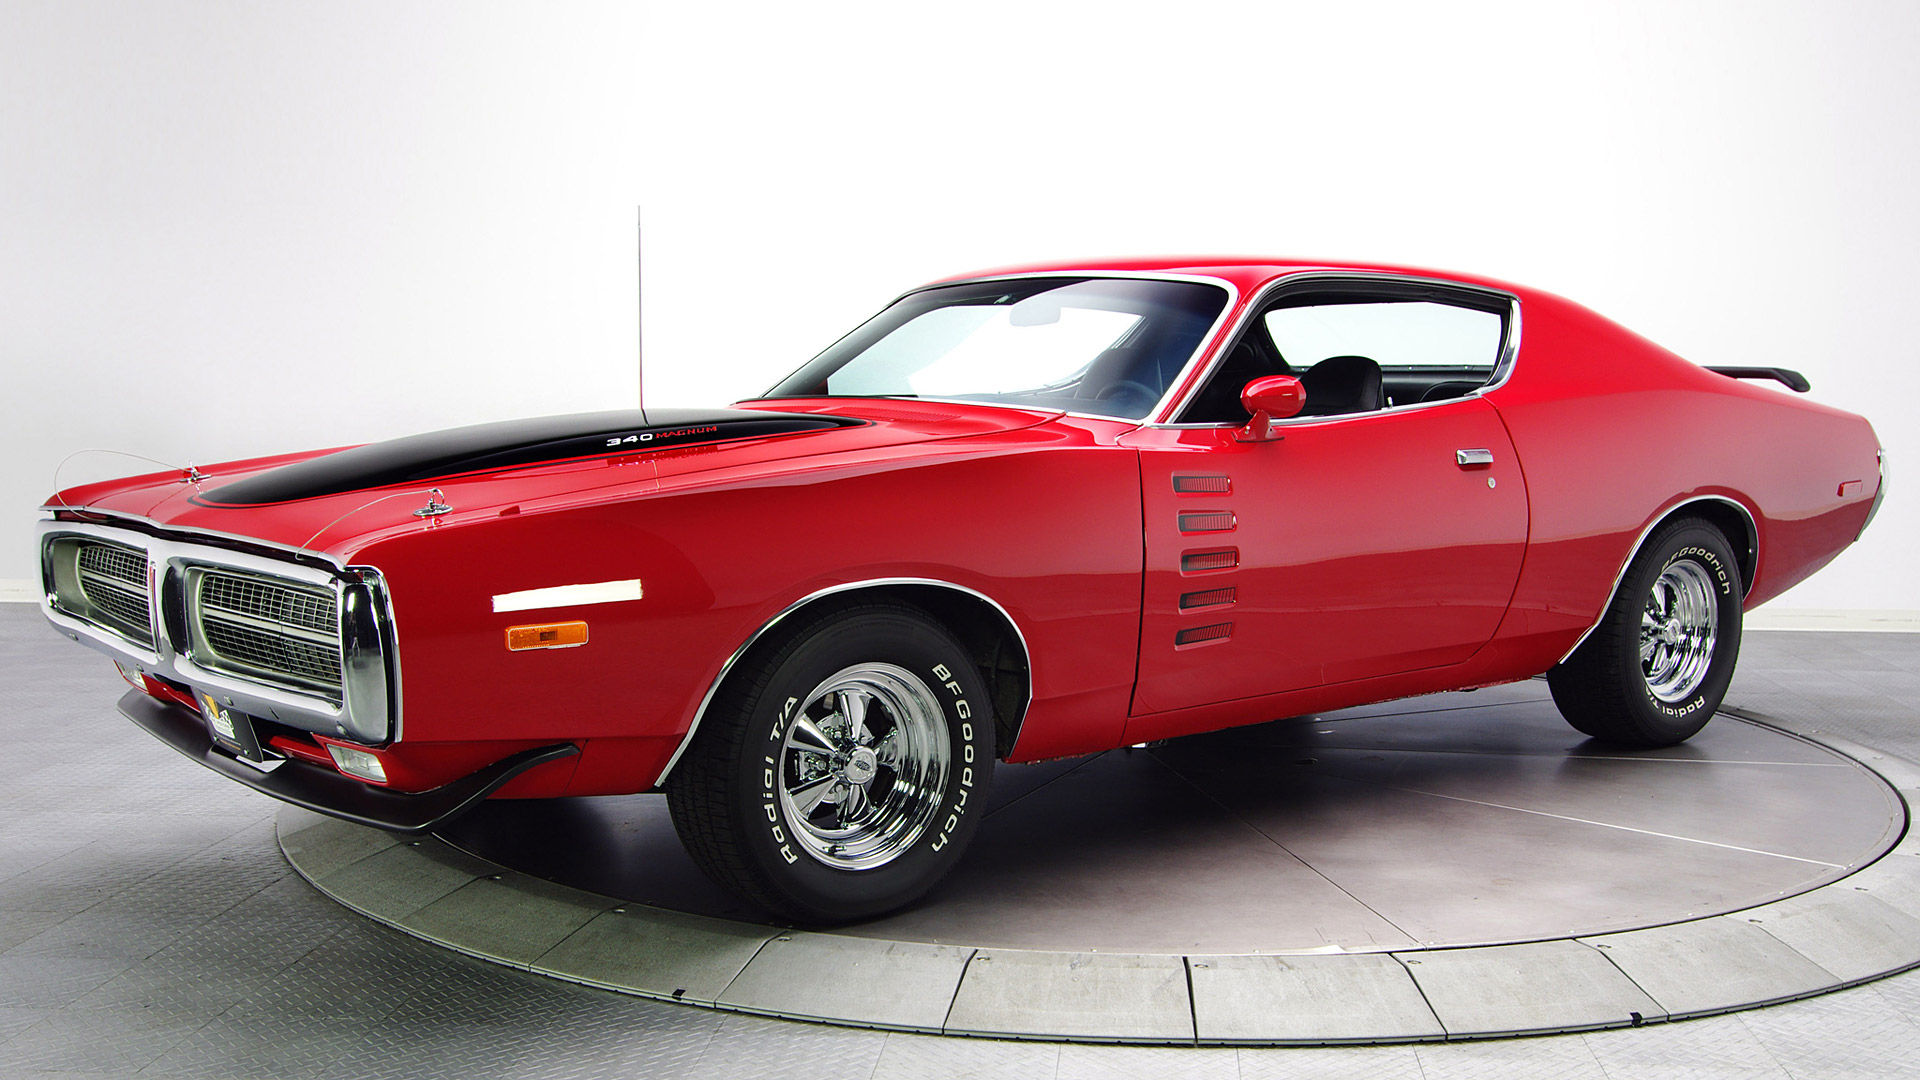 1972 Dodge Charger Rallye 340 Magnum